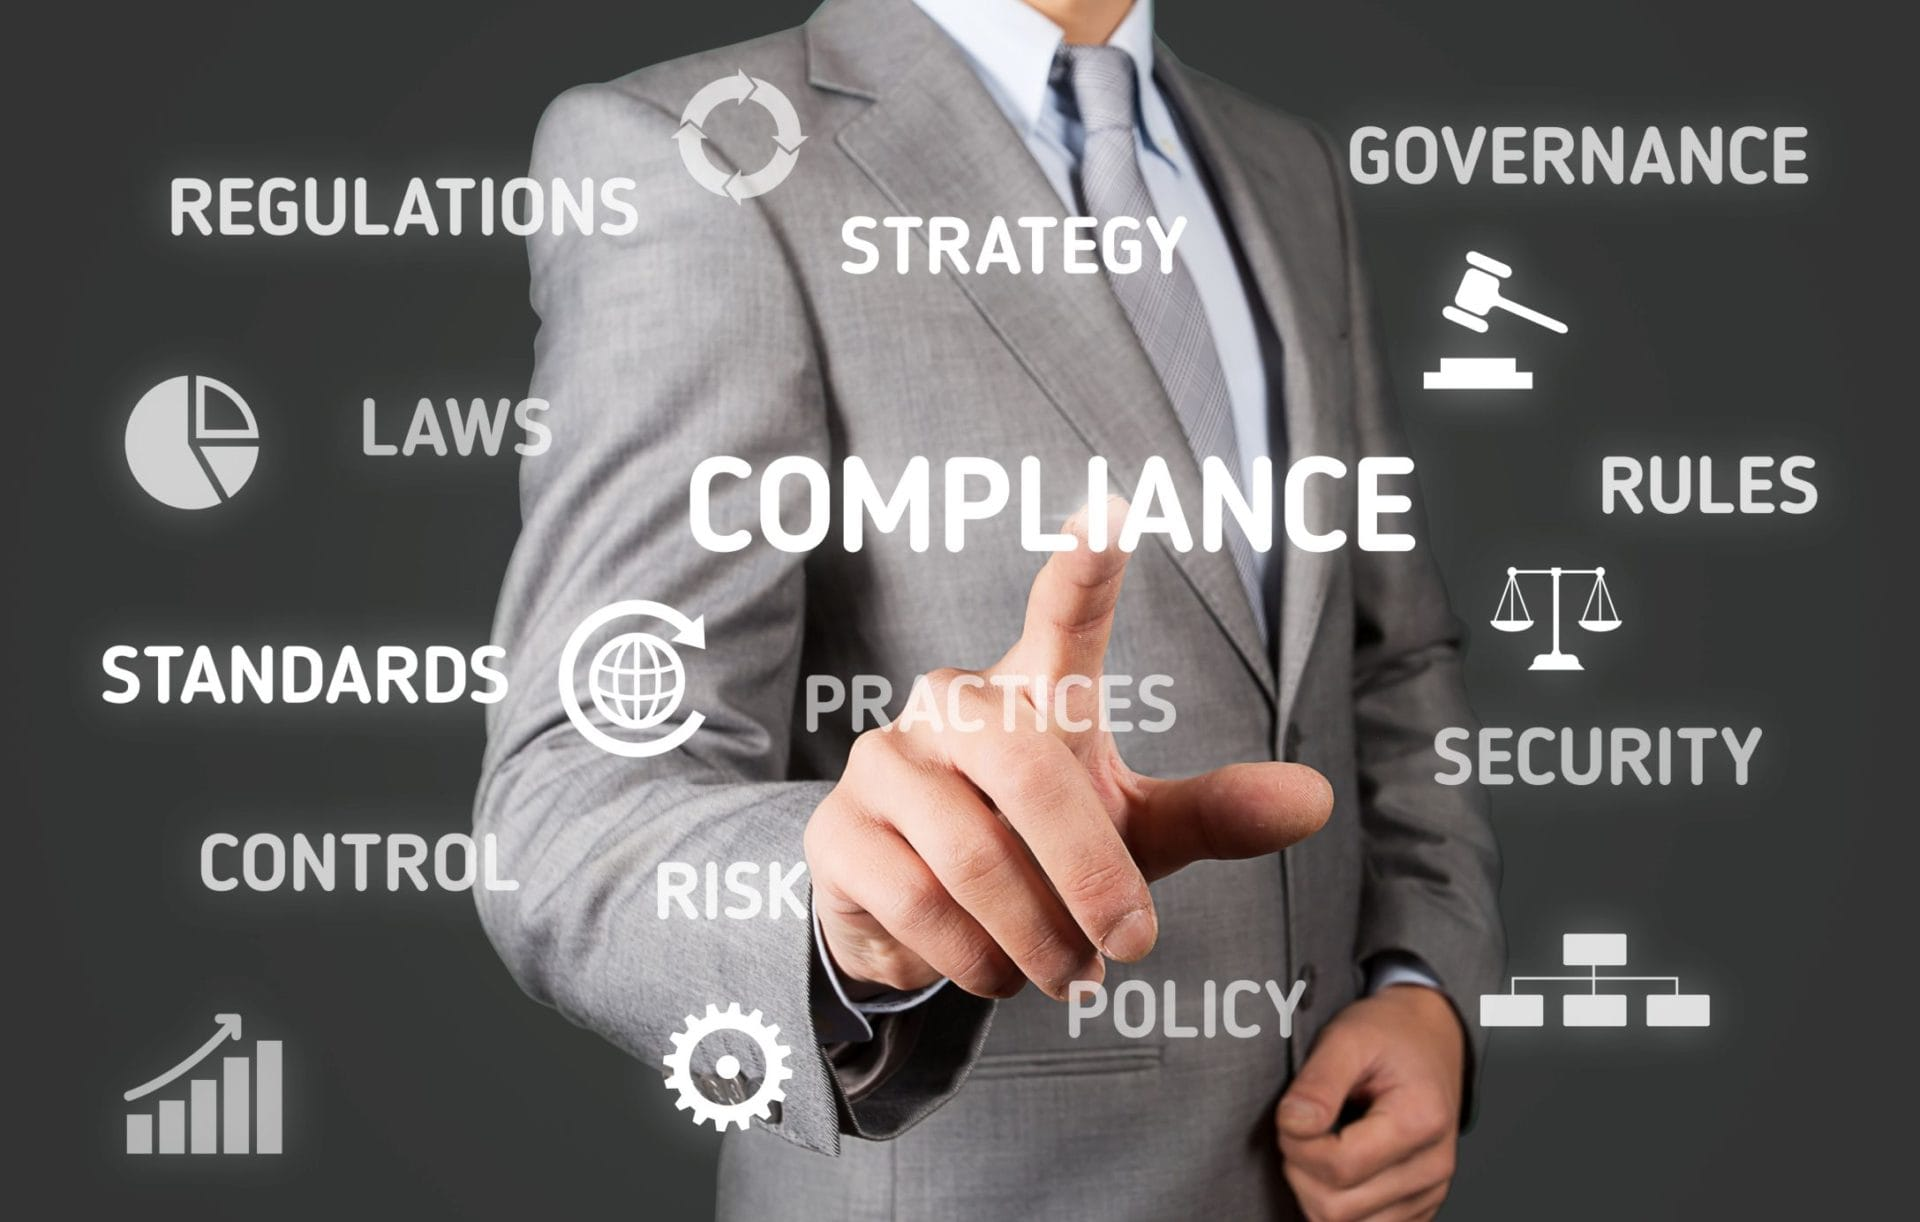 compliance-regulations-thinkstockphotos-476546556